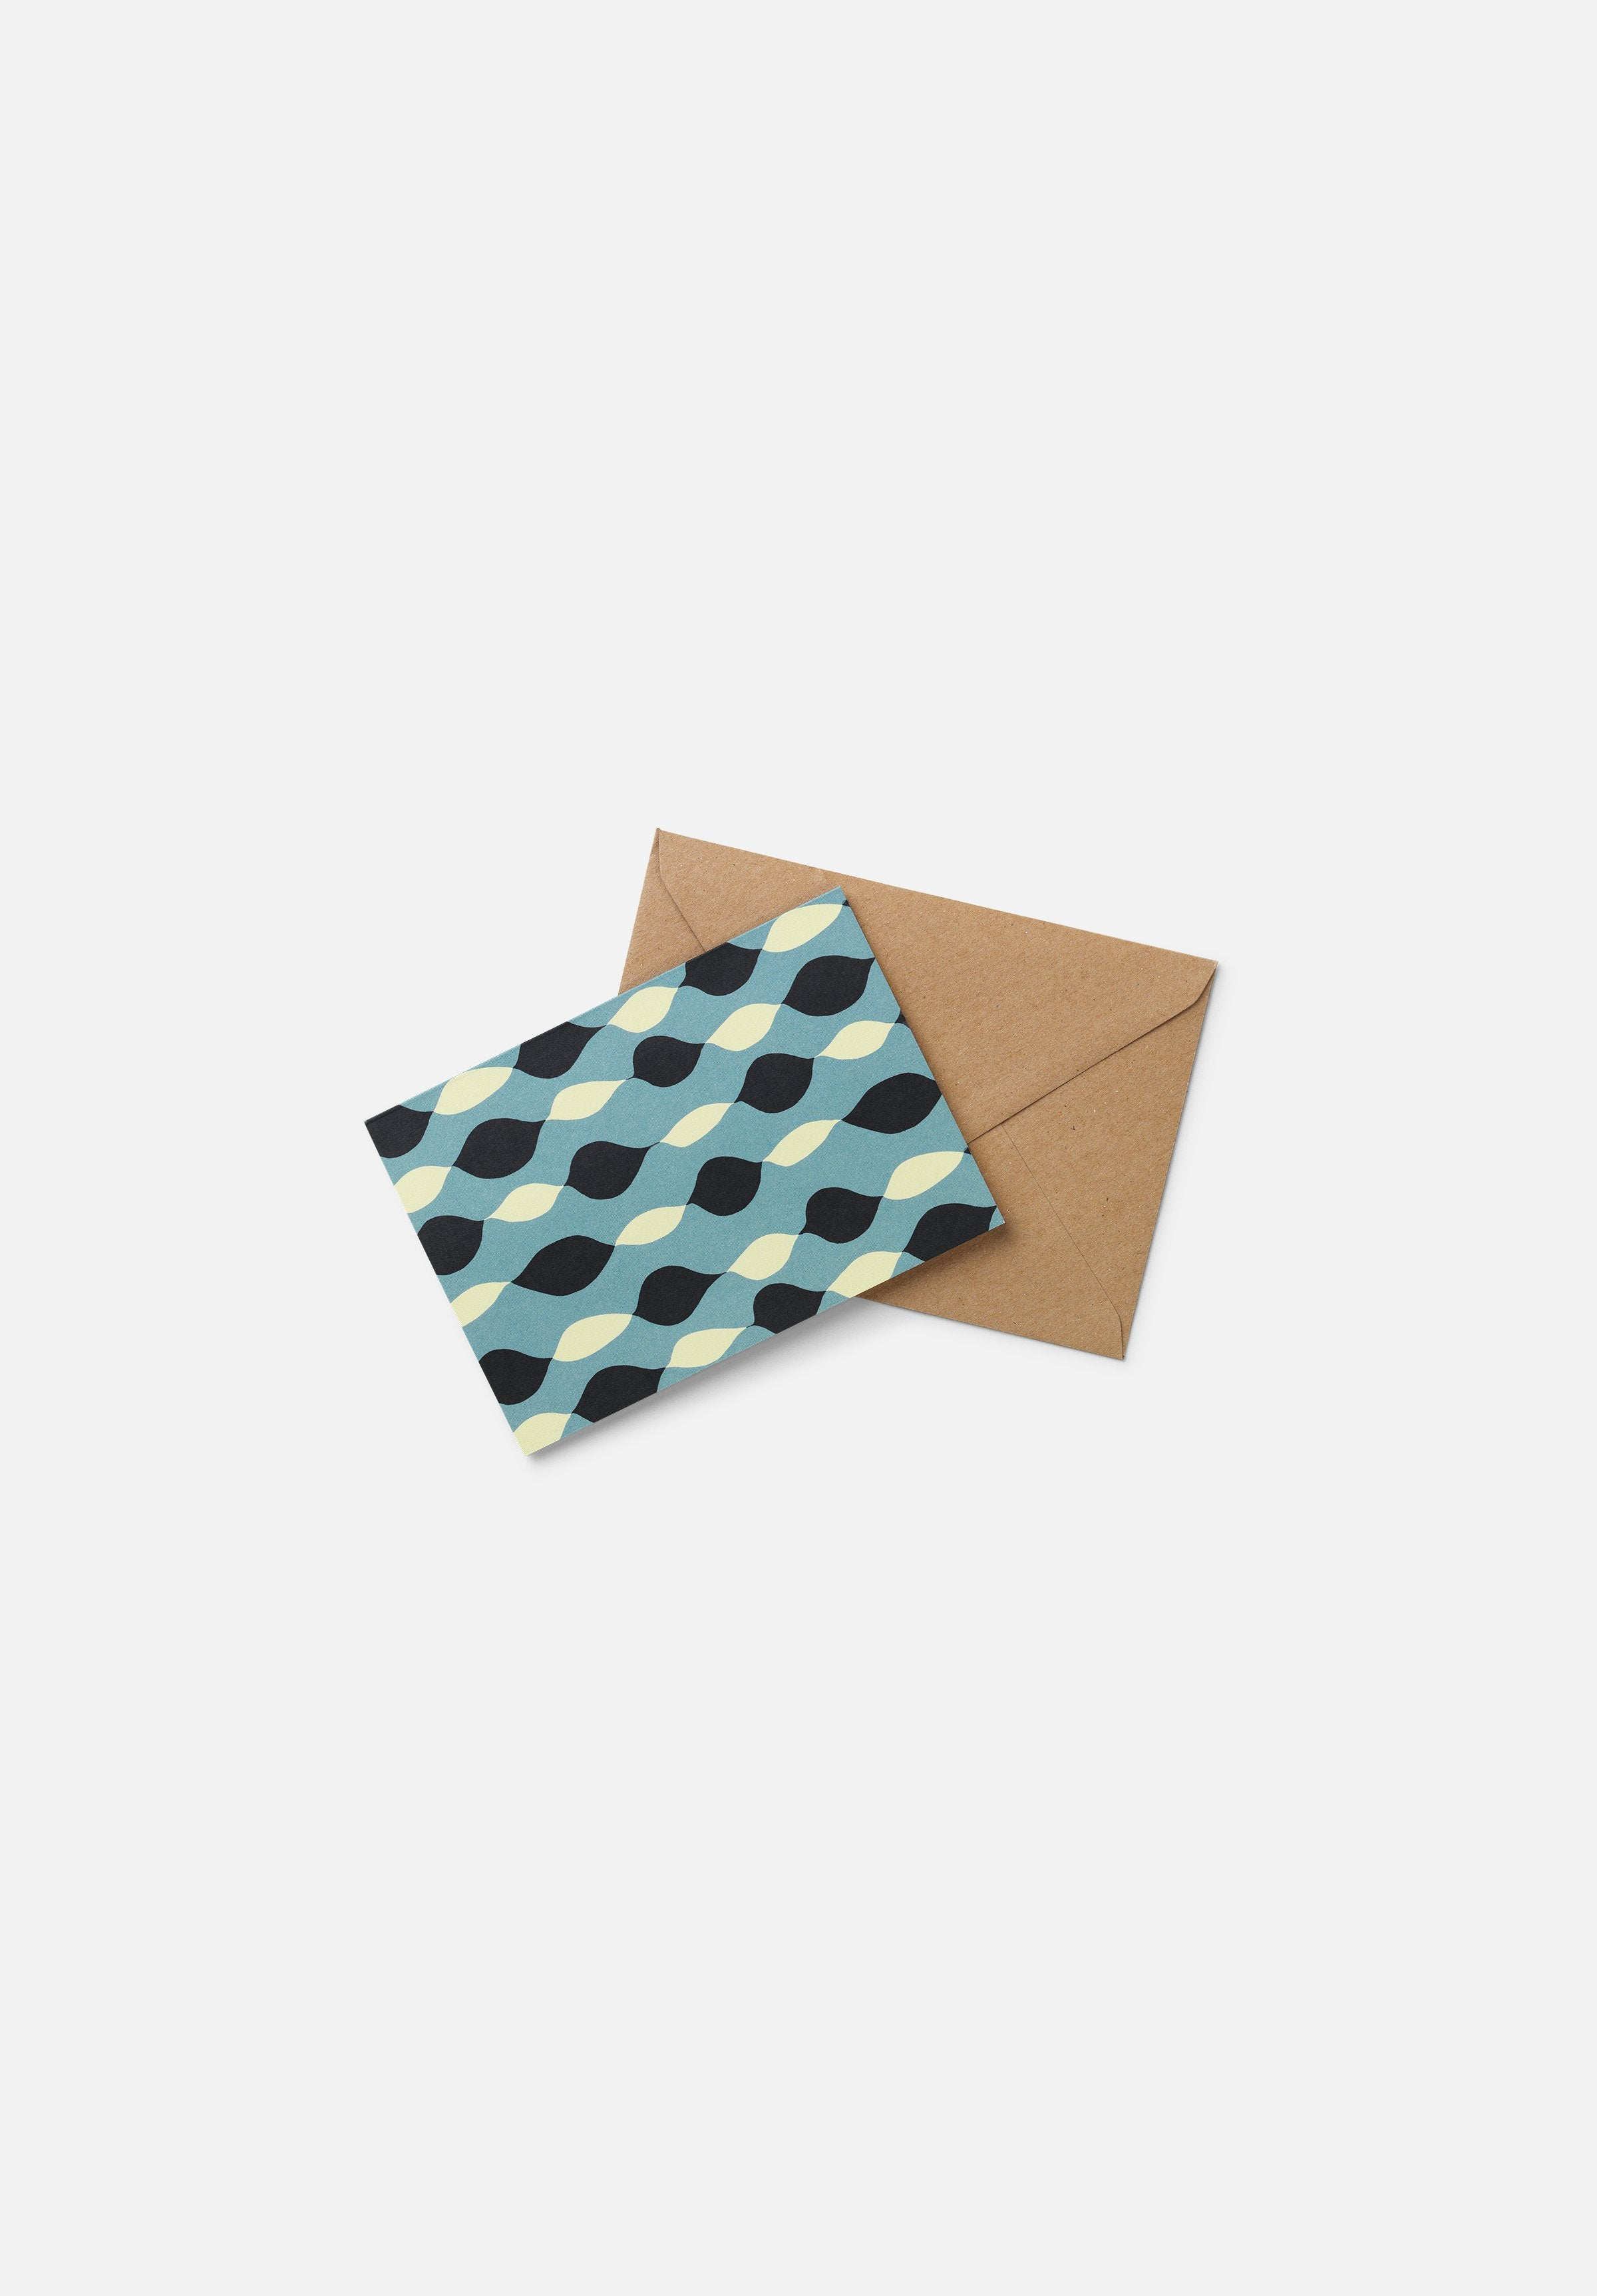 EDITH Greeting Card — Drops